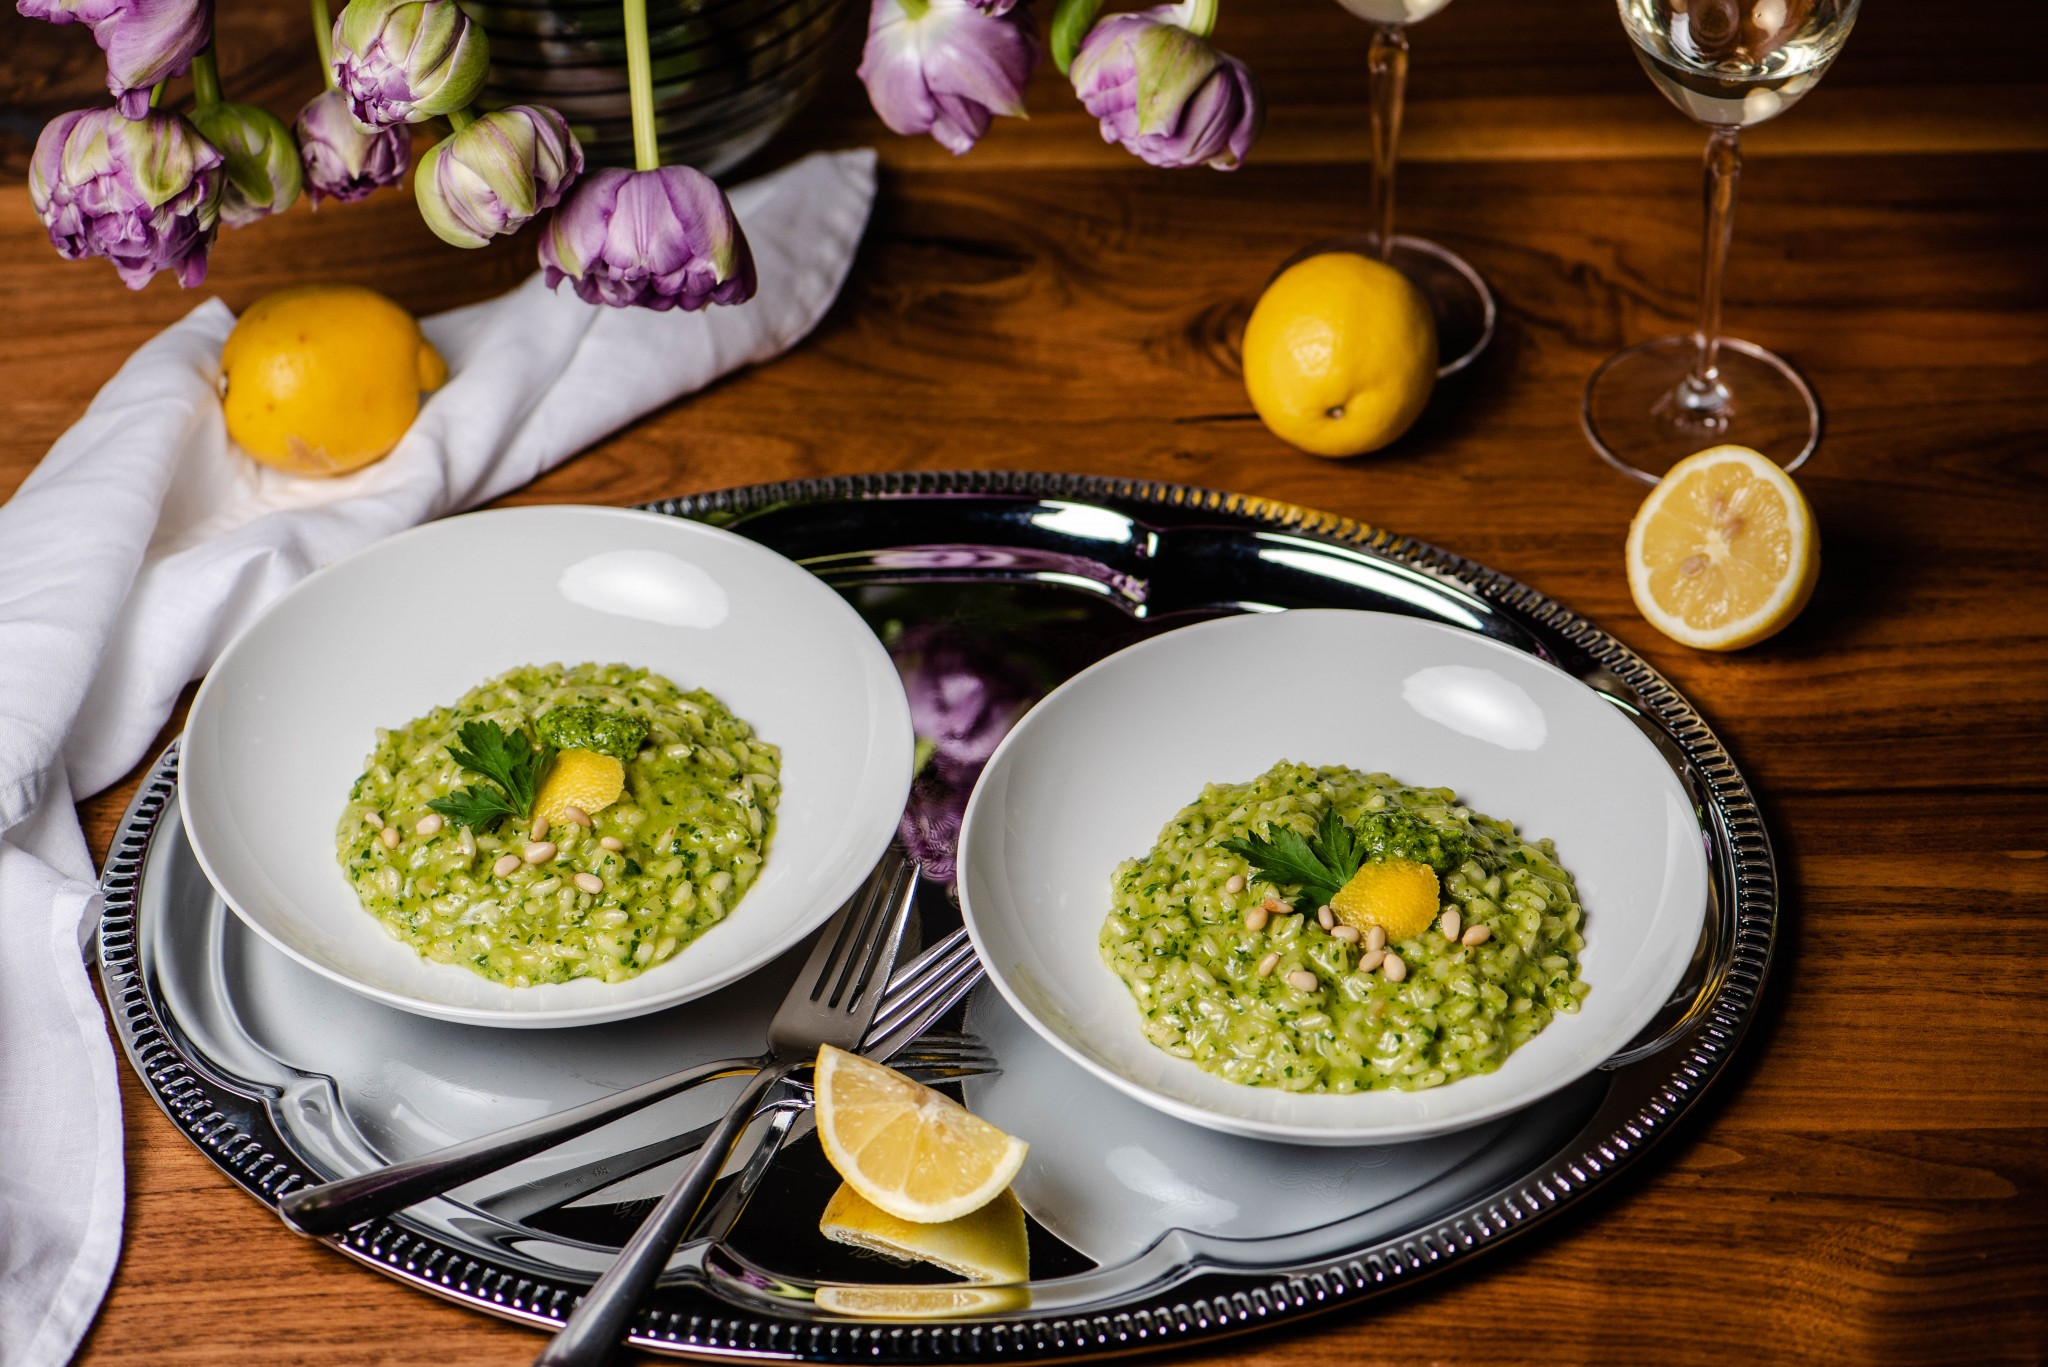 Petersilie-Zitronen-Risotto